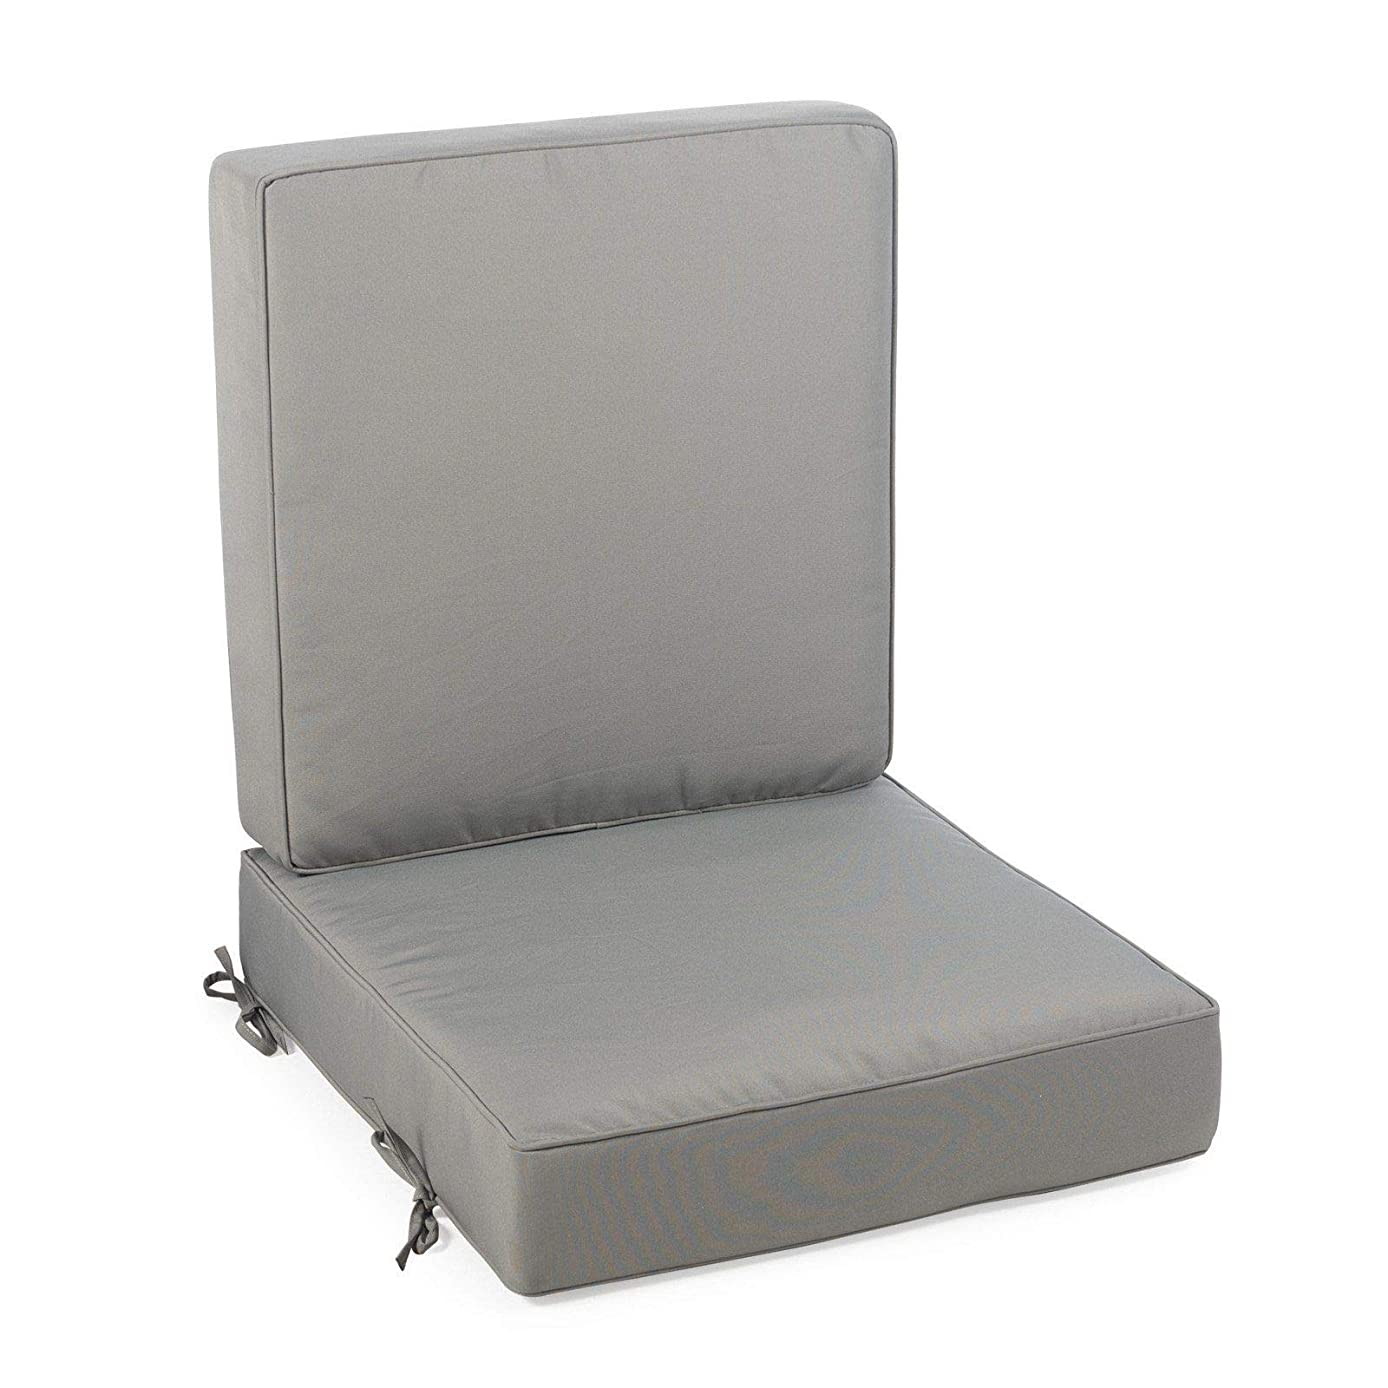 Home Improvements Solid Medium Gray Outdoor Patio Chair Deep Seat Cushion Set Hinged Seat Back